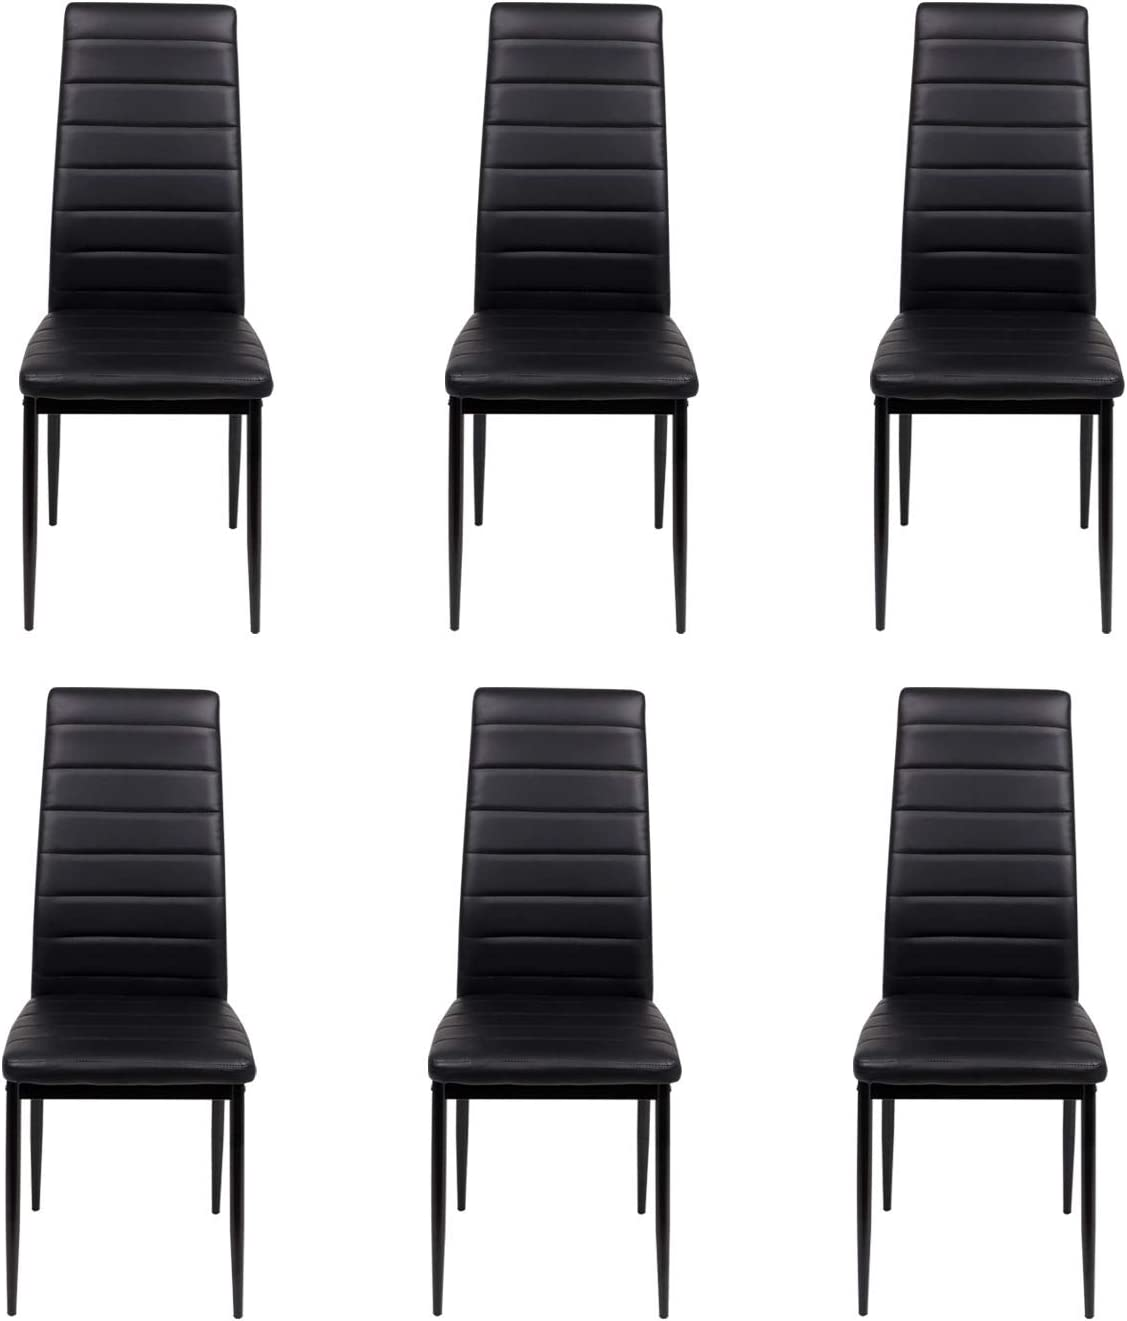 J Dining Table And Chairs Black Smooth Glass Table With Set Of 6 High Back Pu